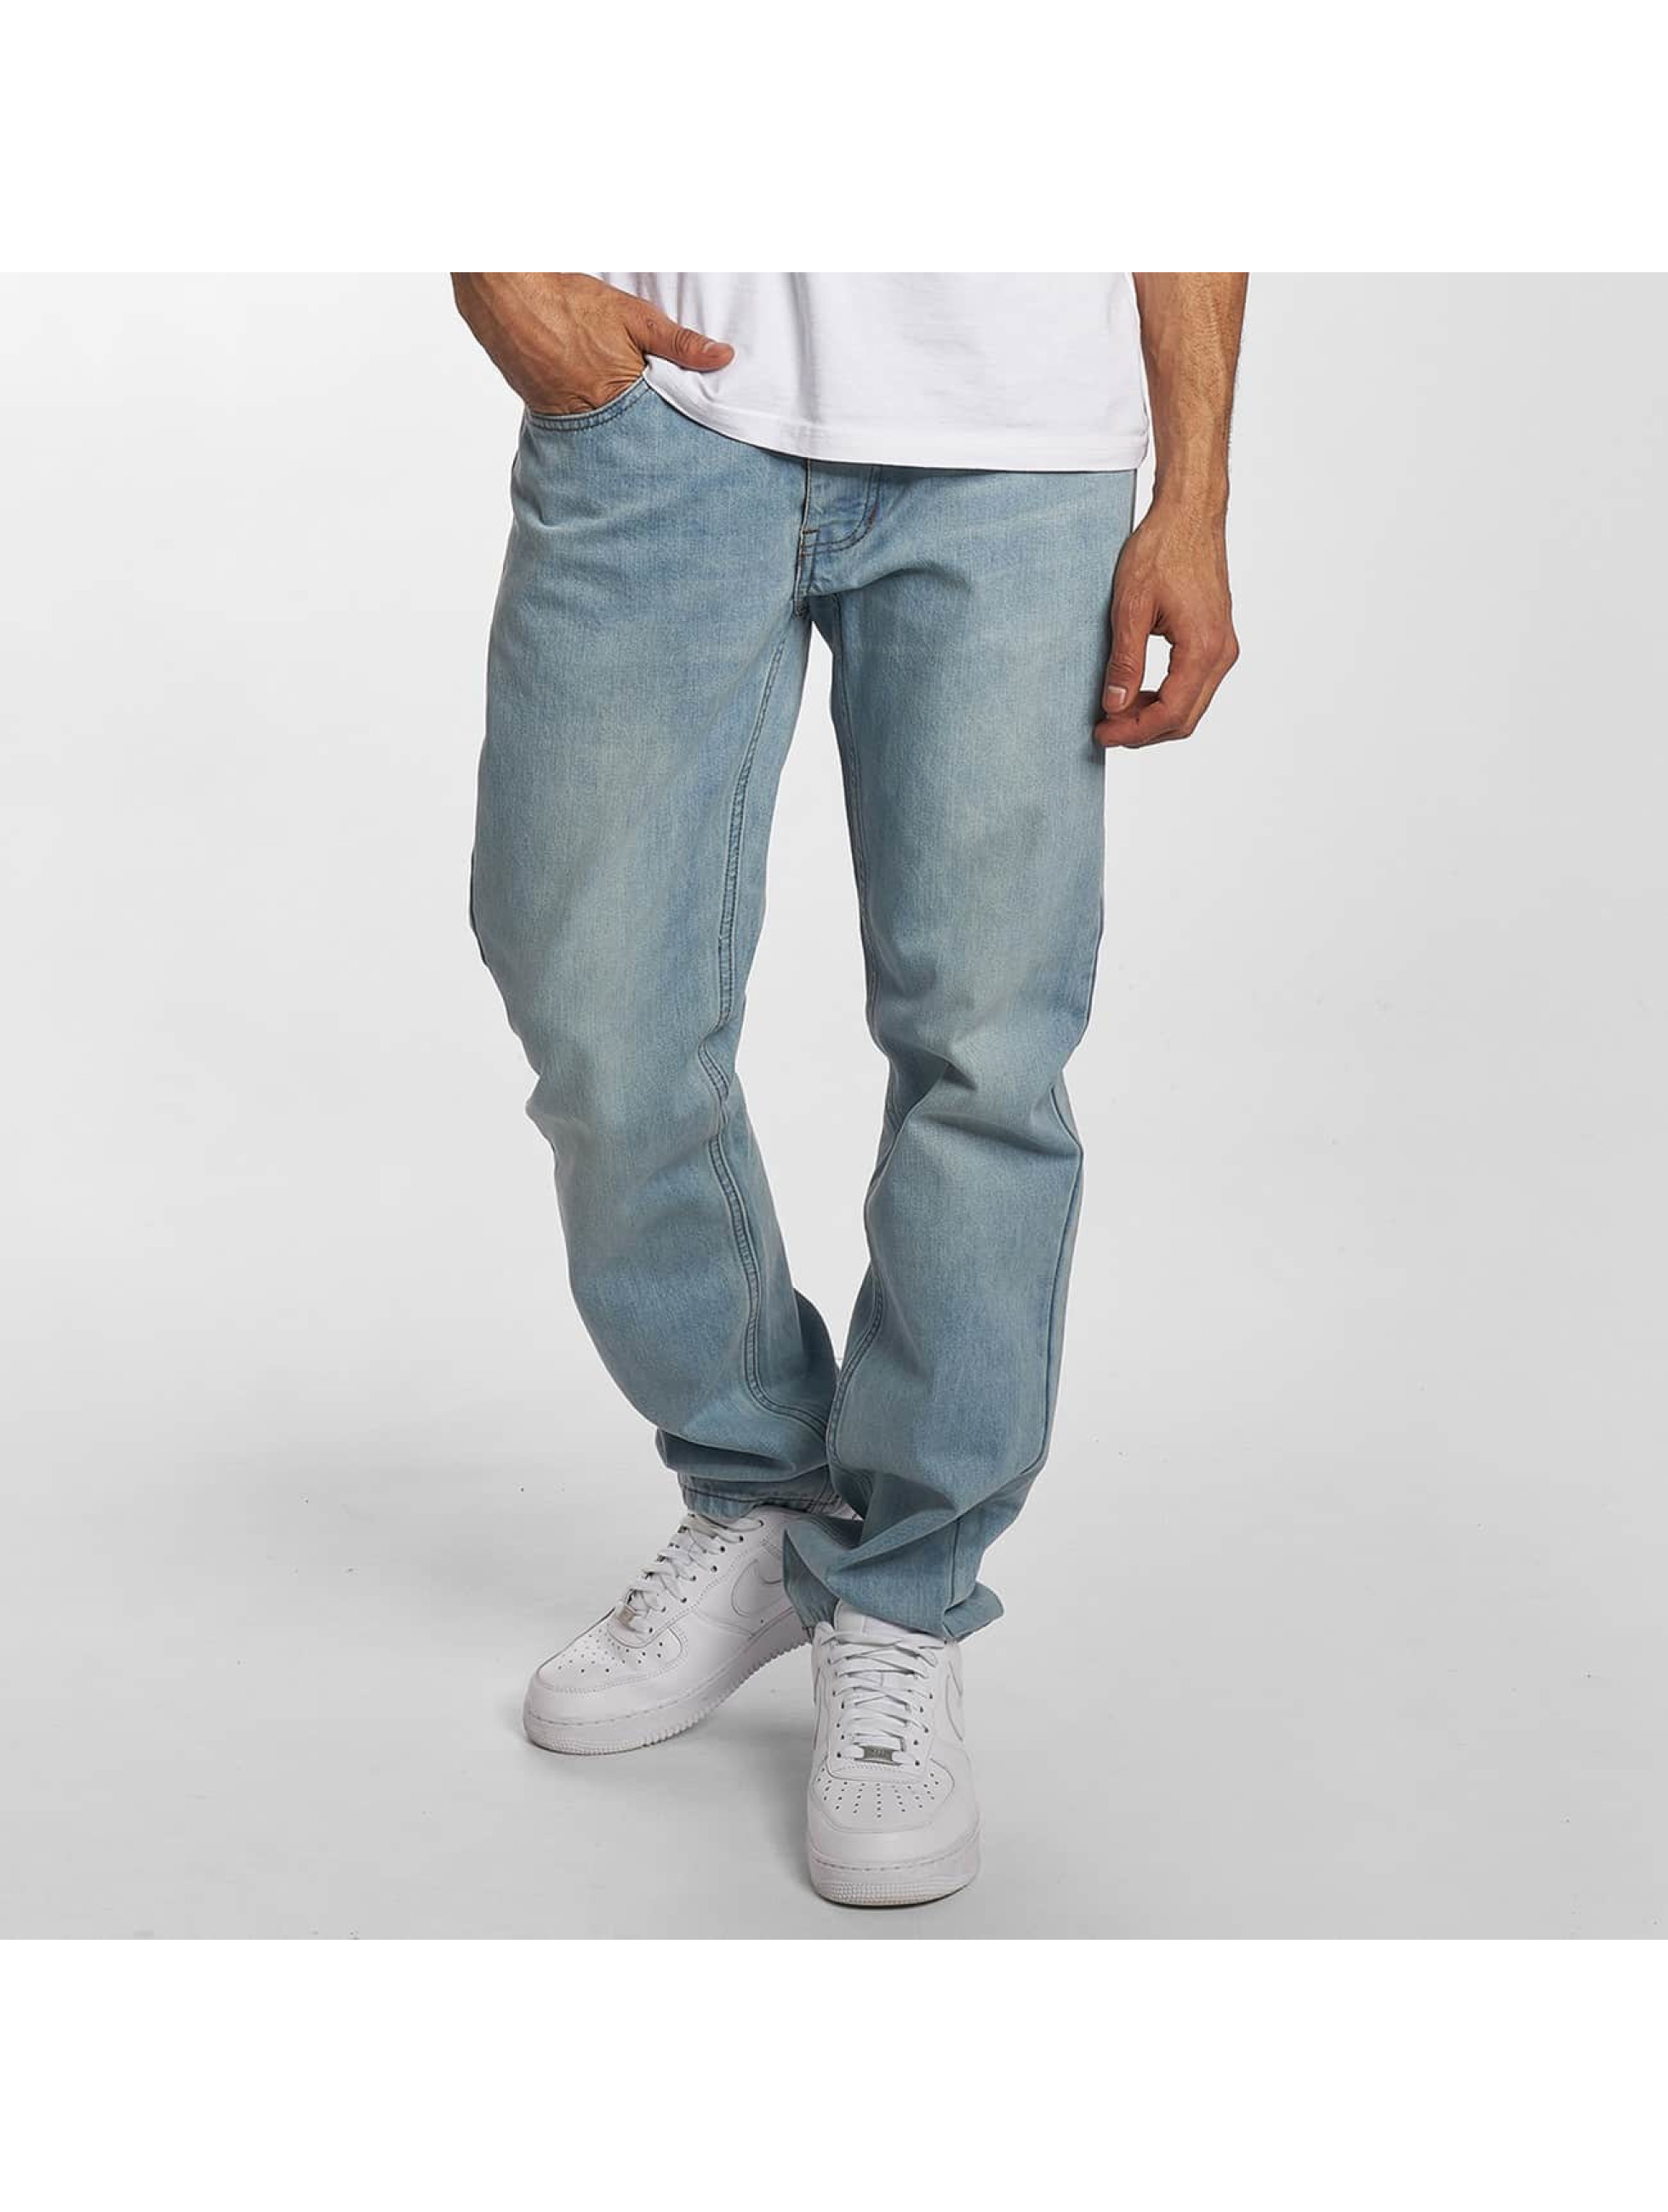 Rocawear / Straight Fit Jeans Moletro Leather Patch in blue W 46